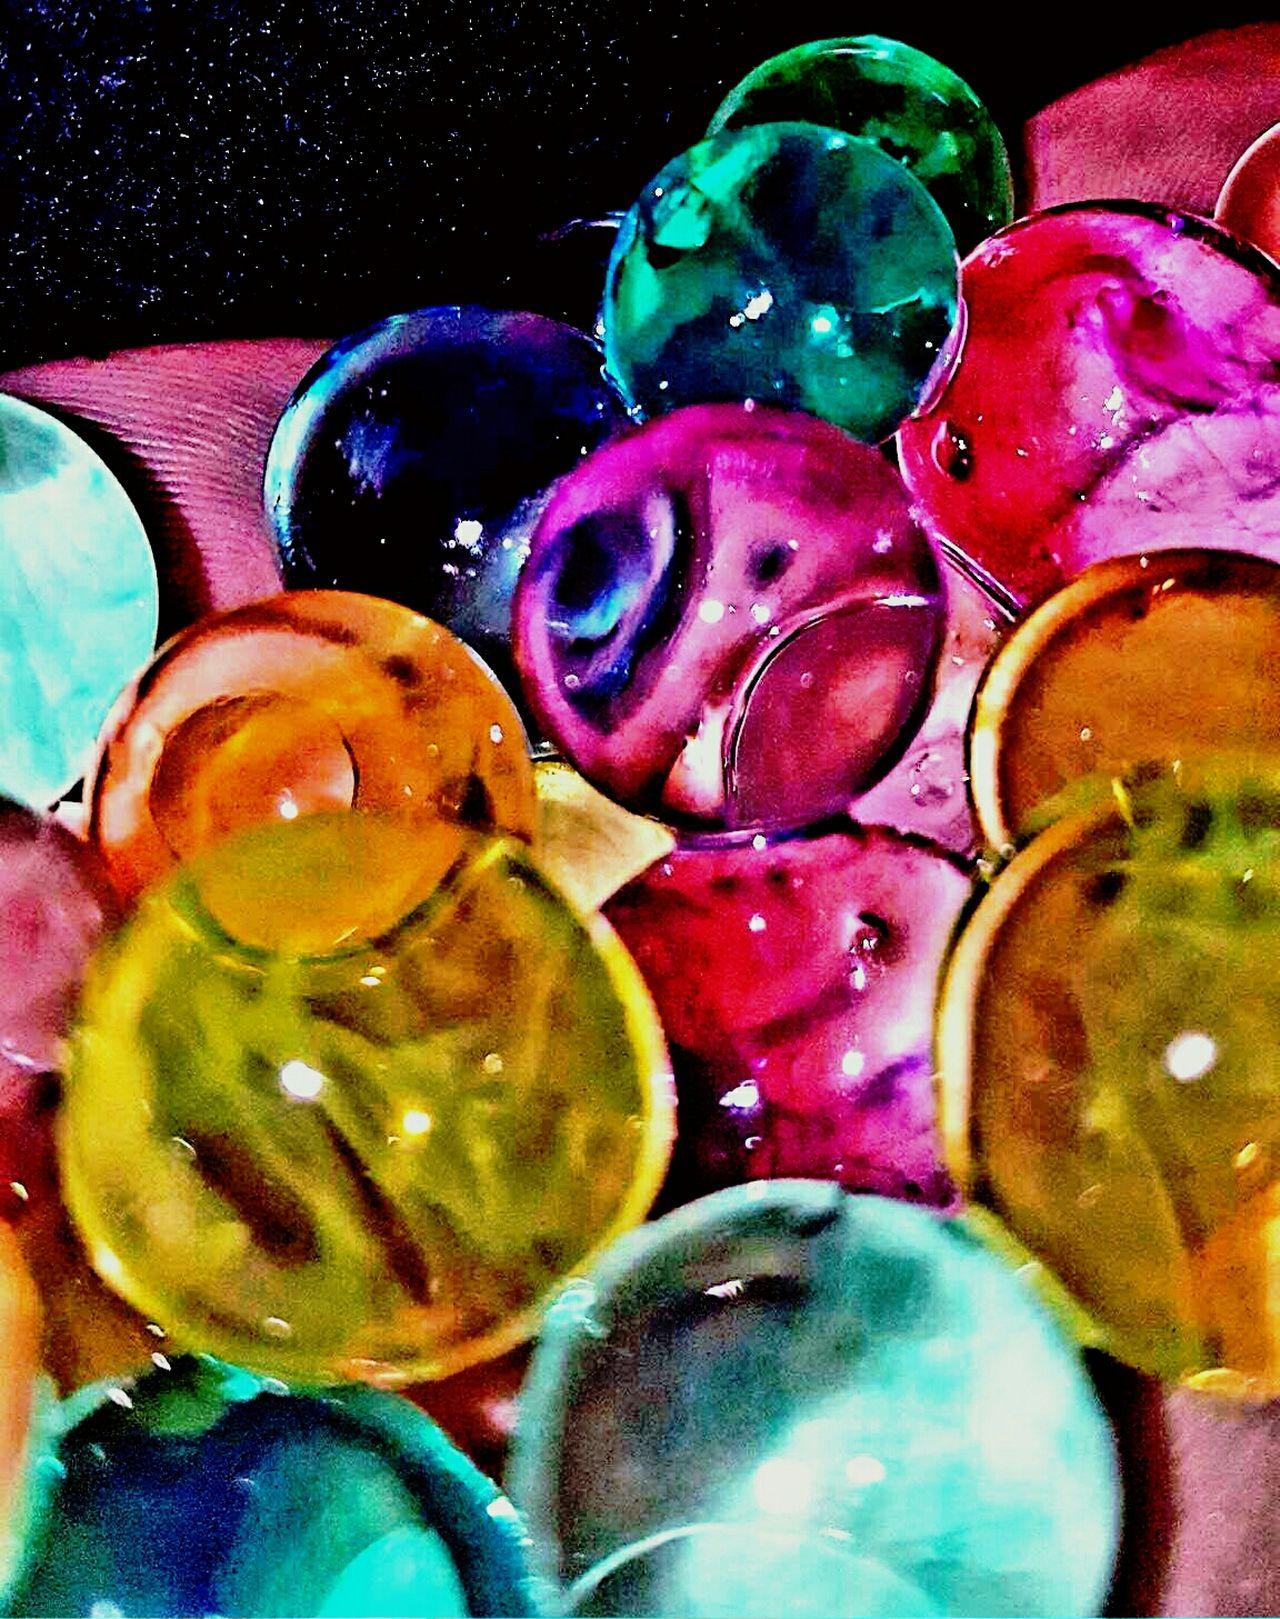 Calming water balls. They looked fake. Calming Balls Reality Looks Fake Water Balls Color Explosion